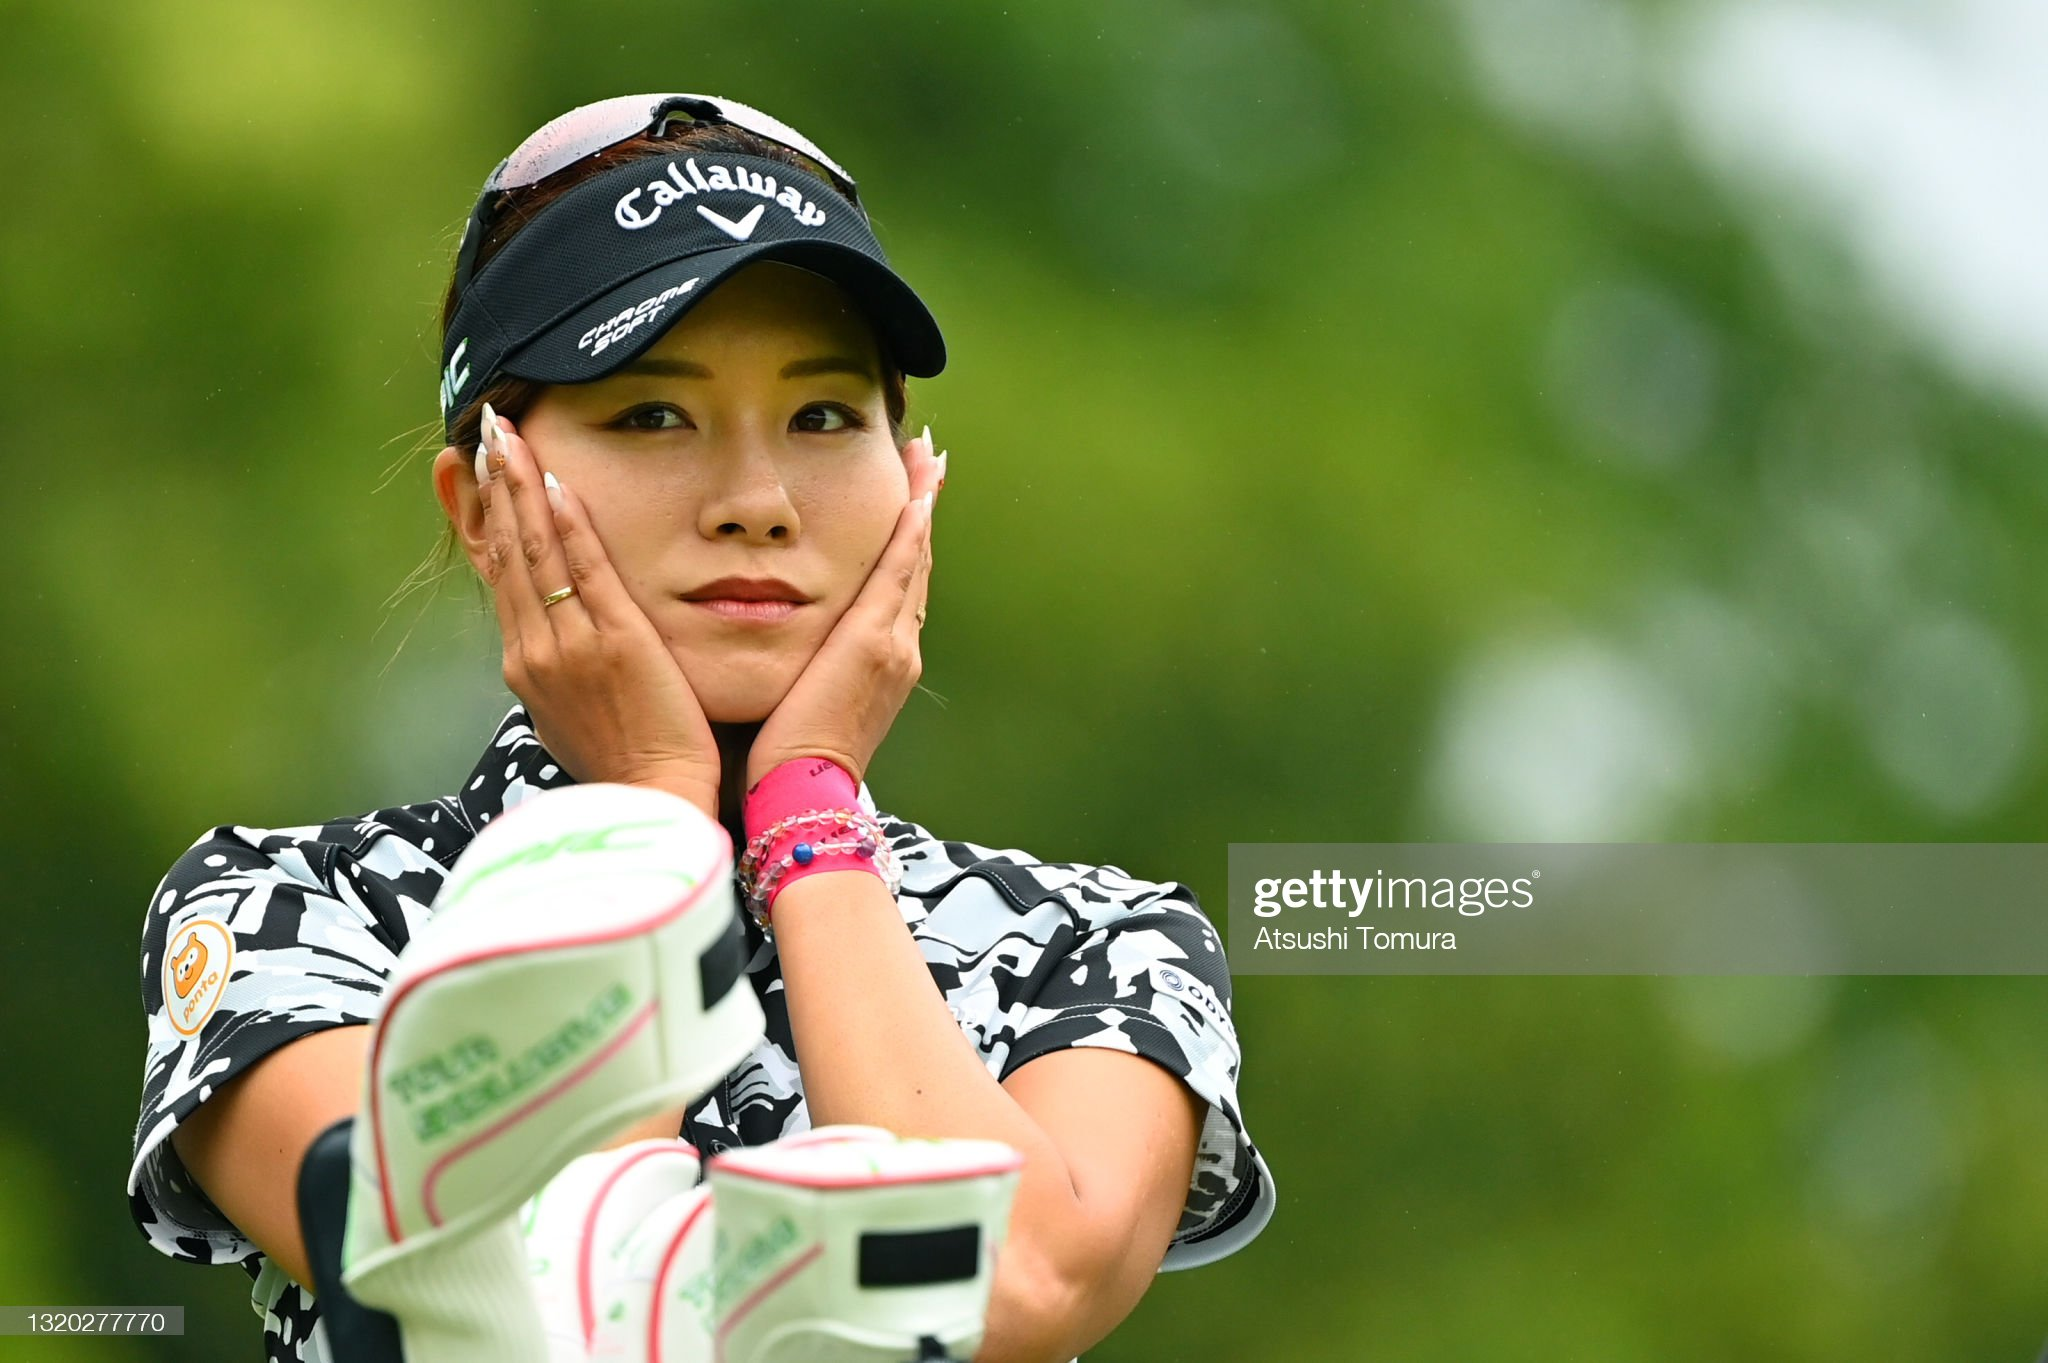 https://media.gettyimages.com/photos/hikari-fujita-of-japan-is-seen-on-the-3rd-tee-during-the-first-round-picture-id1320277770?s=2048x2048